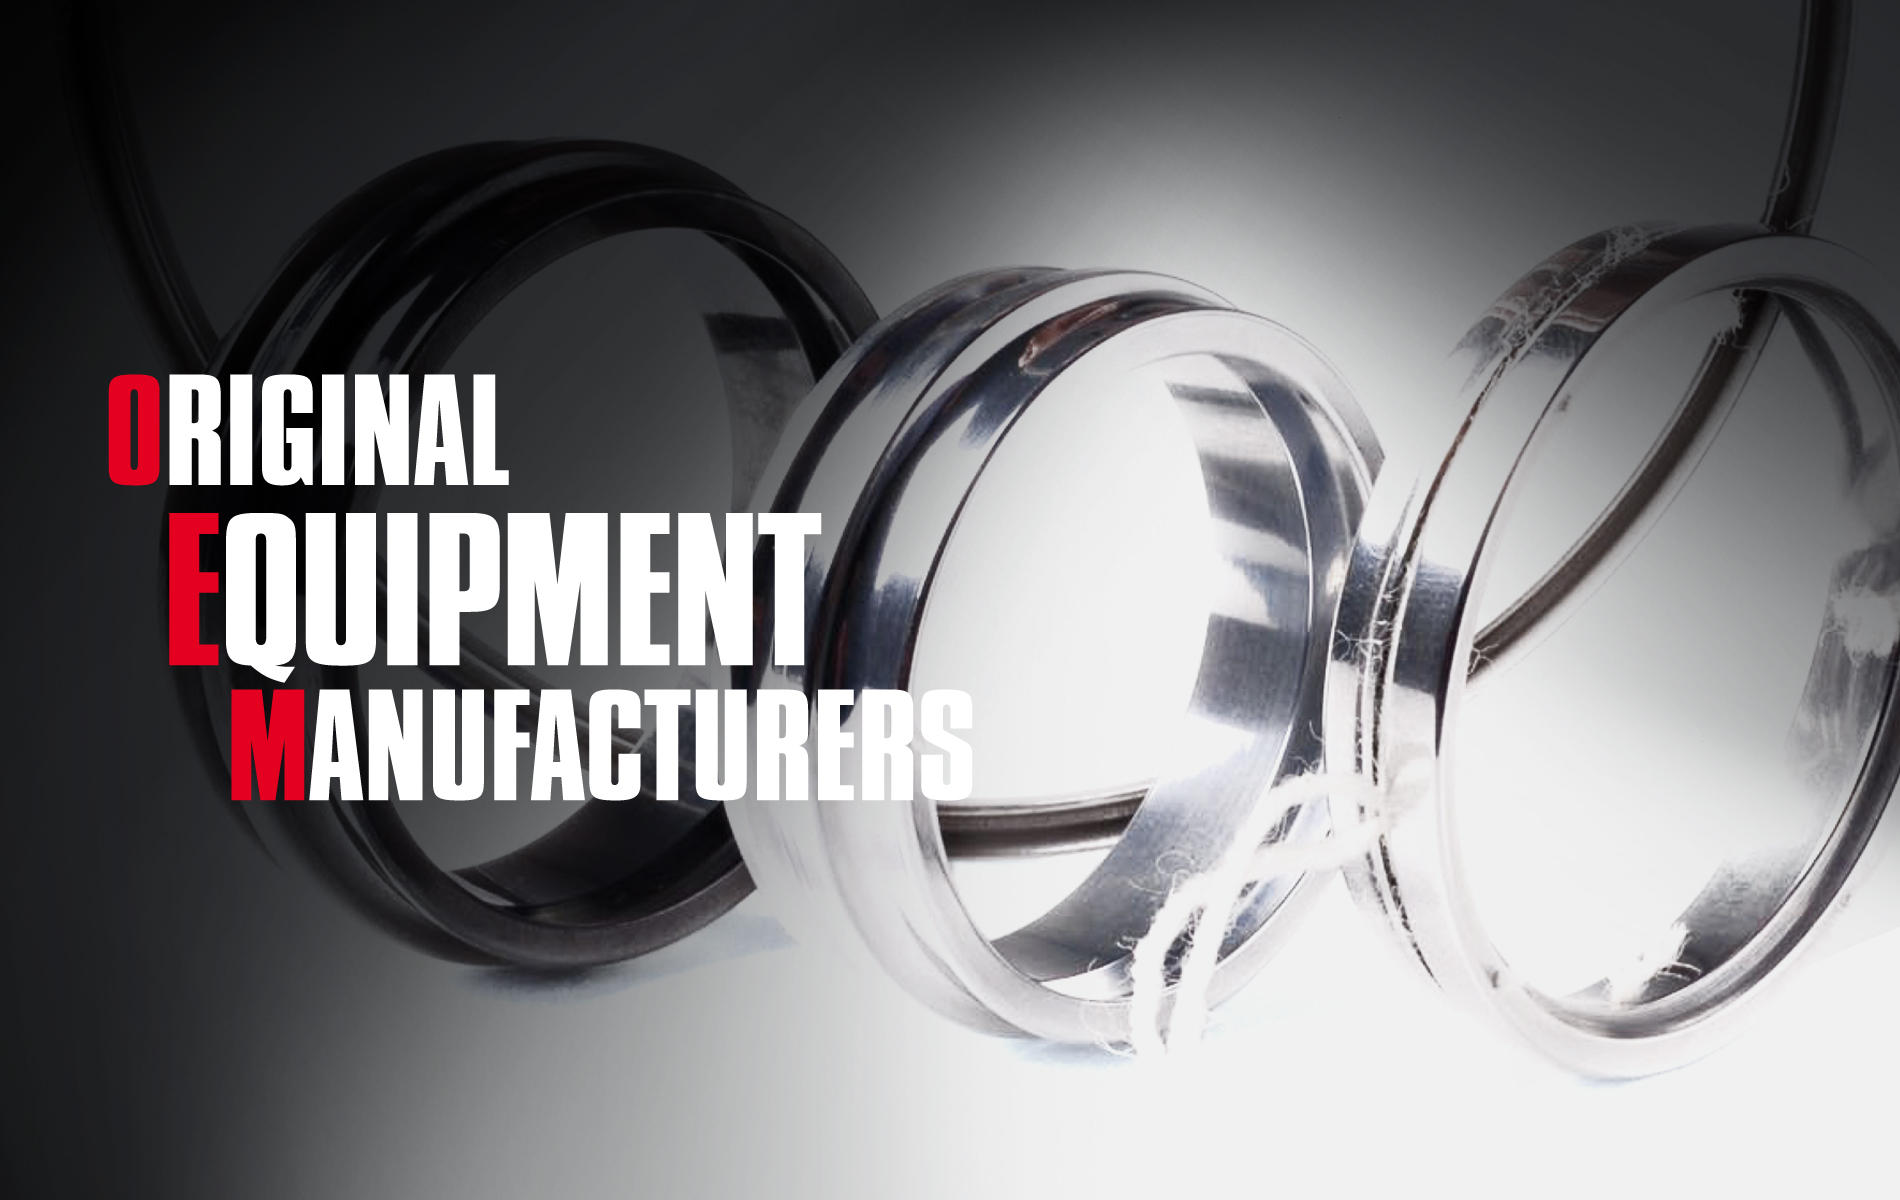 Original Equipment Manufacturers